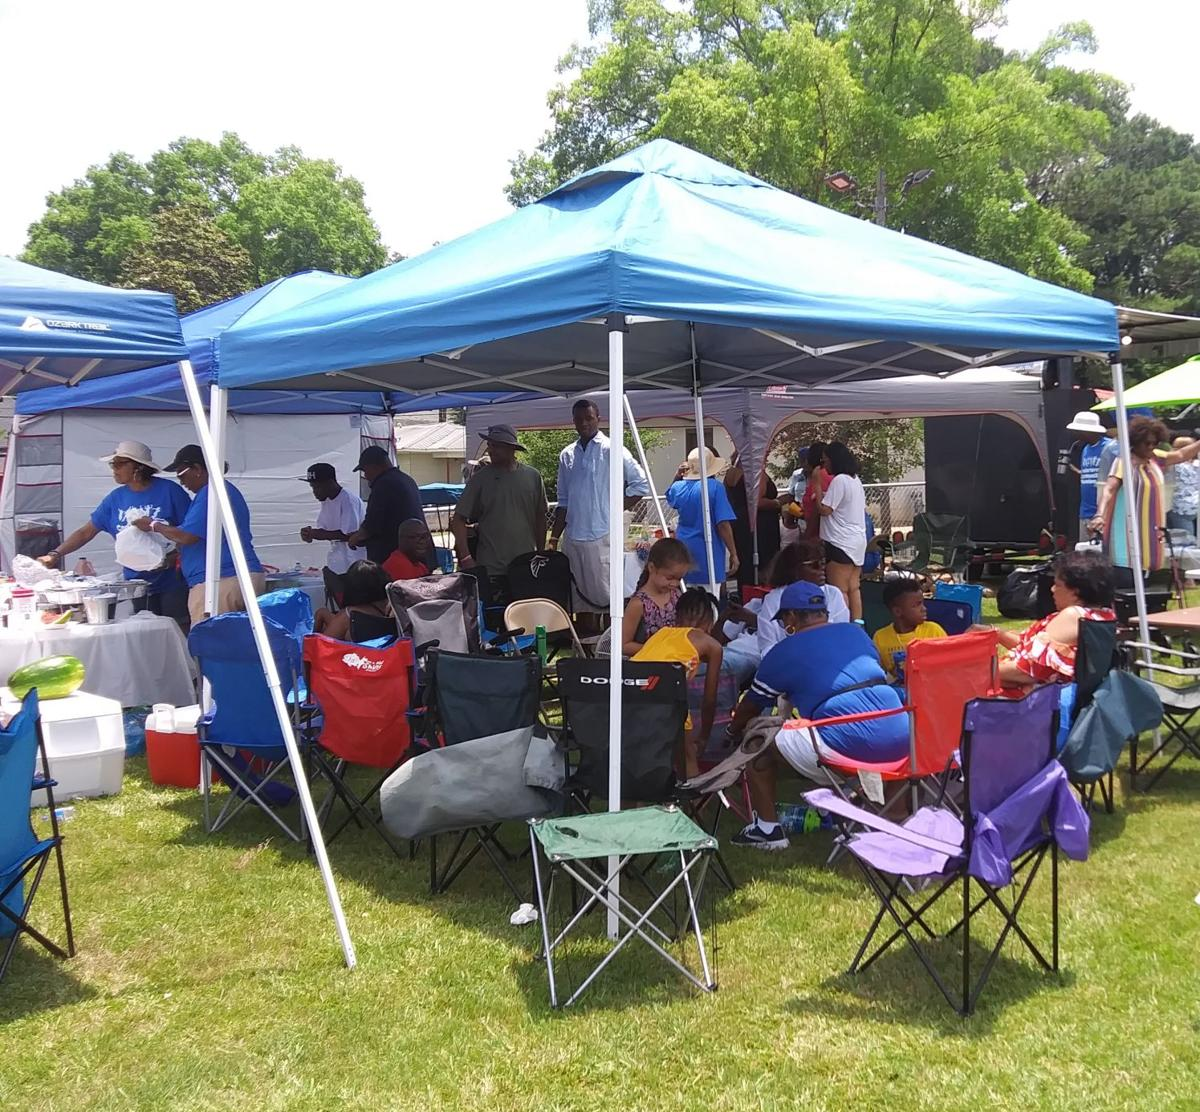 2nd Annual Community Reunion at Turner Street Park